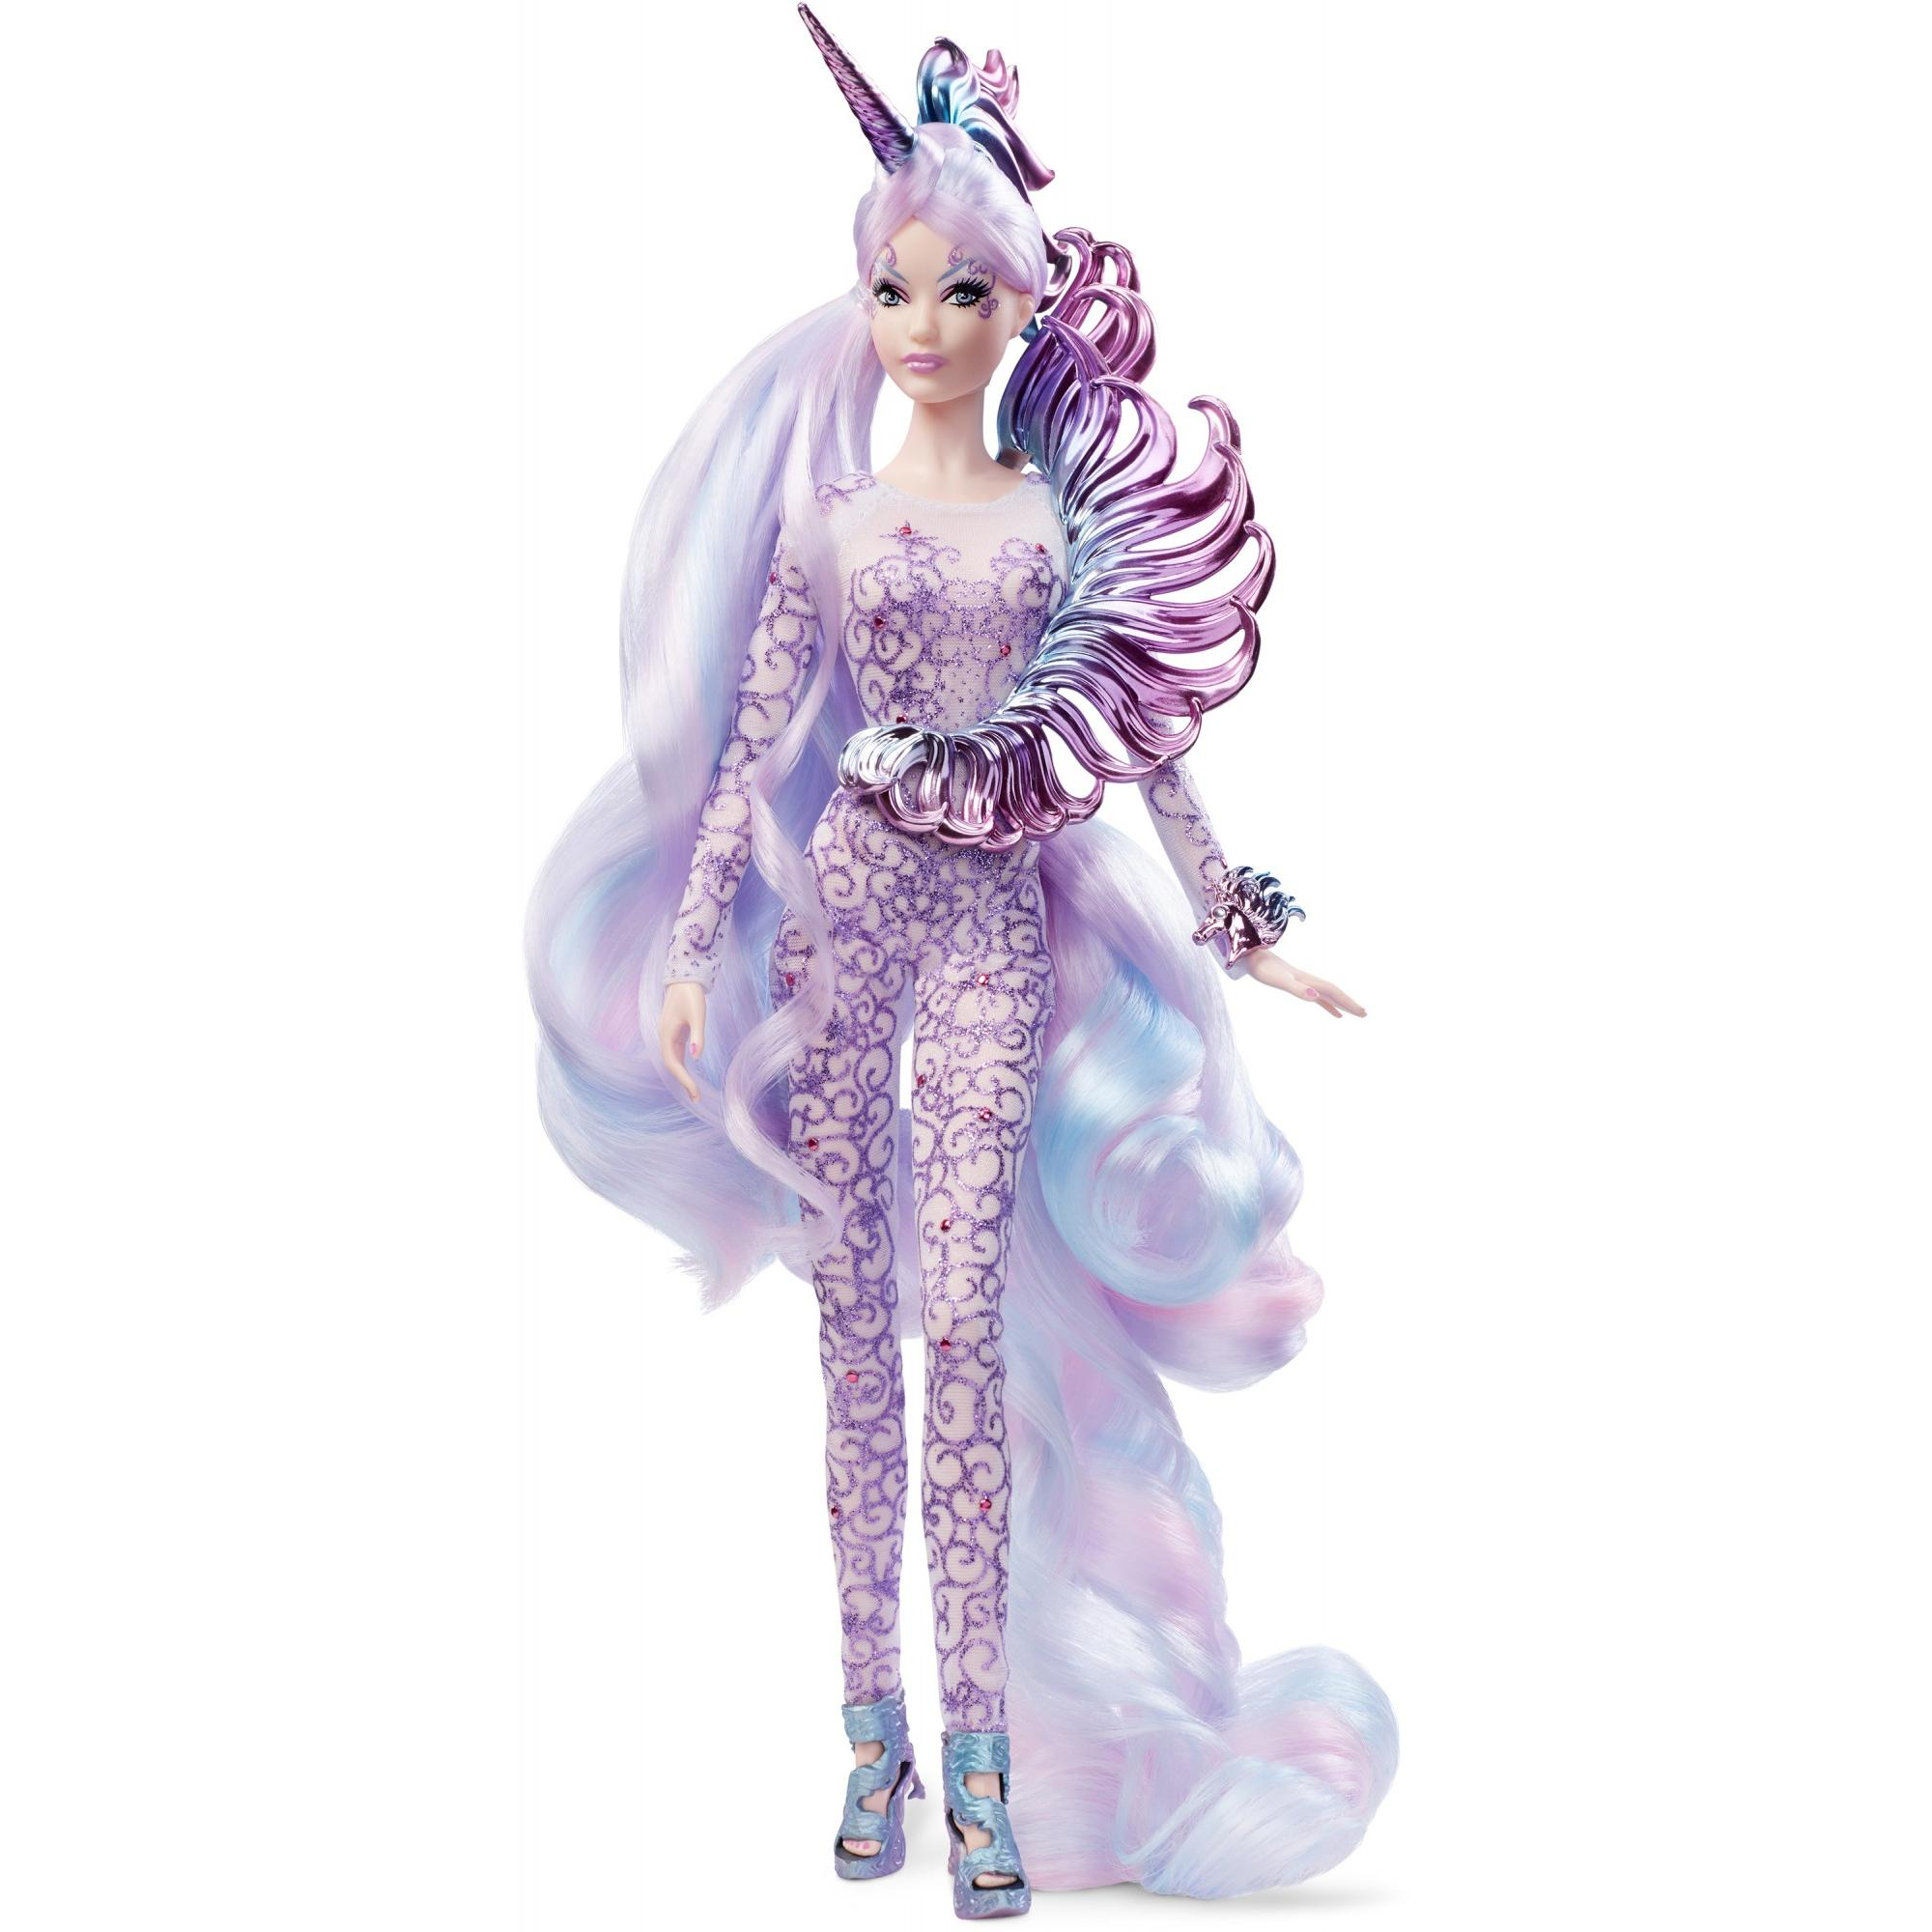 Barbie Unicorn Goddess Doll by Mattel